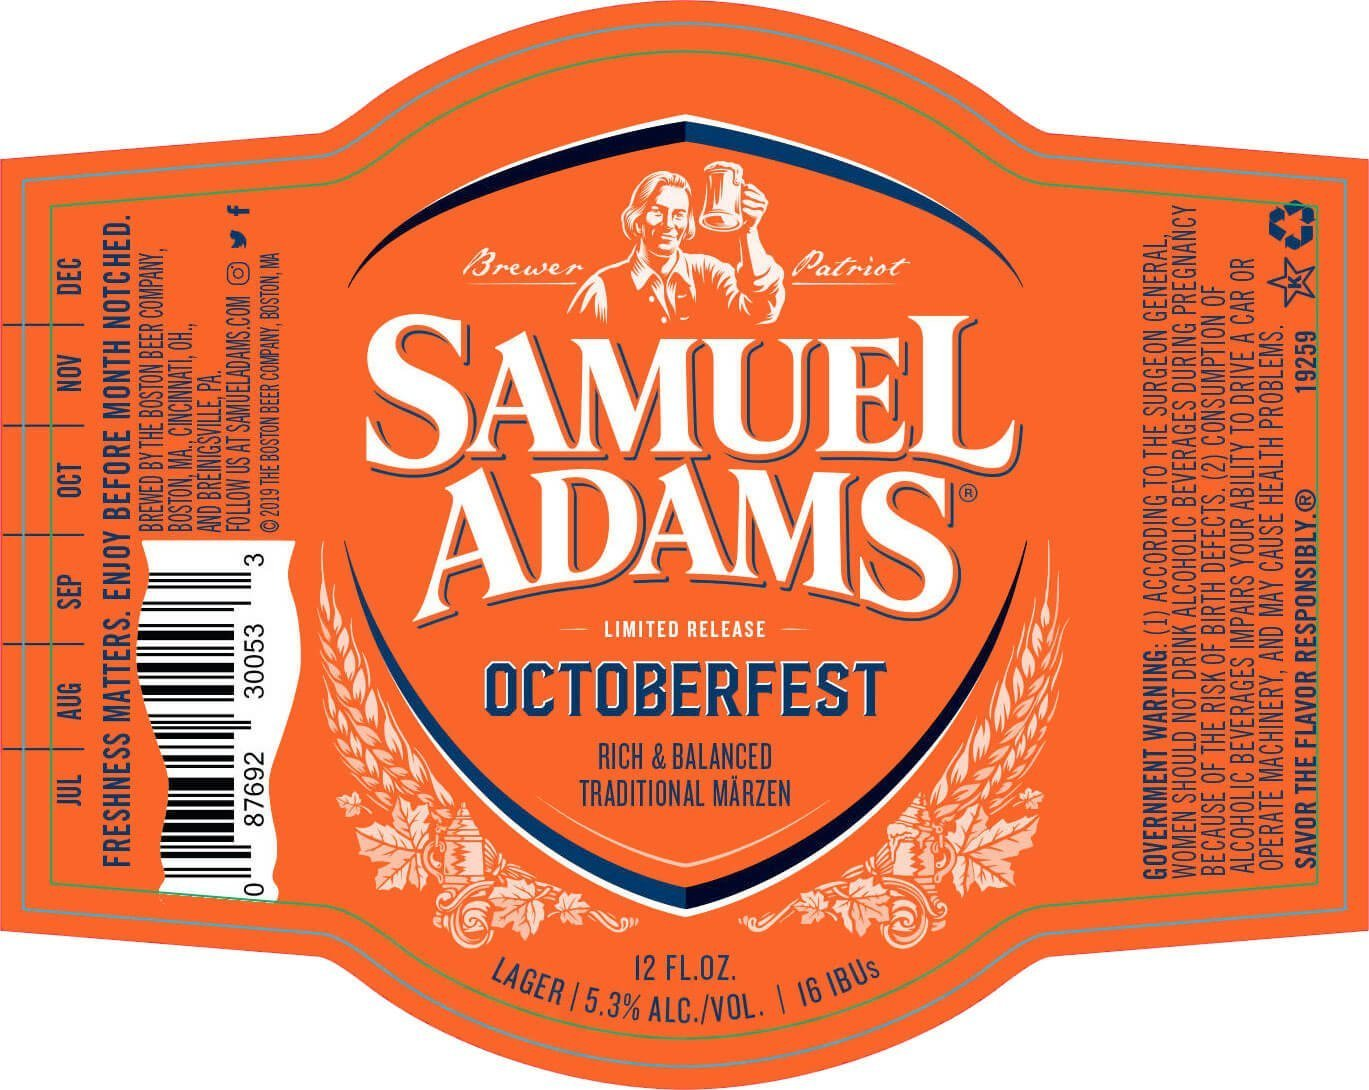 Label art for the Samuel Adams OctoberFest by Boston Beer Company